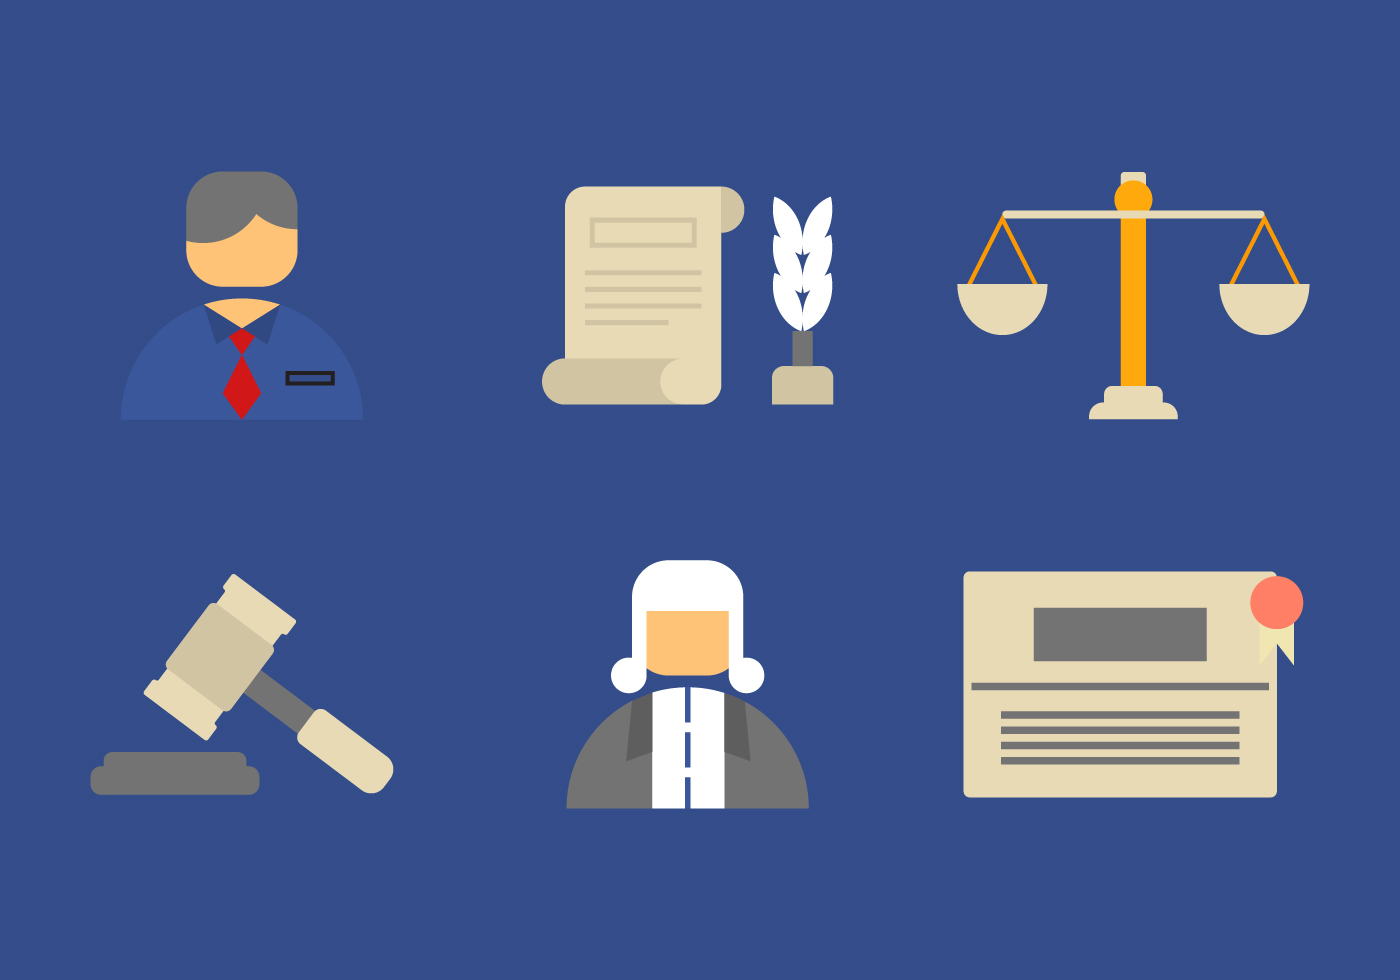 Free Law Office Vector Icons #6 - Download Free Vectors ...